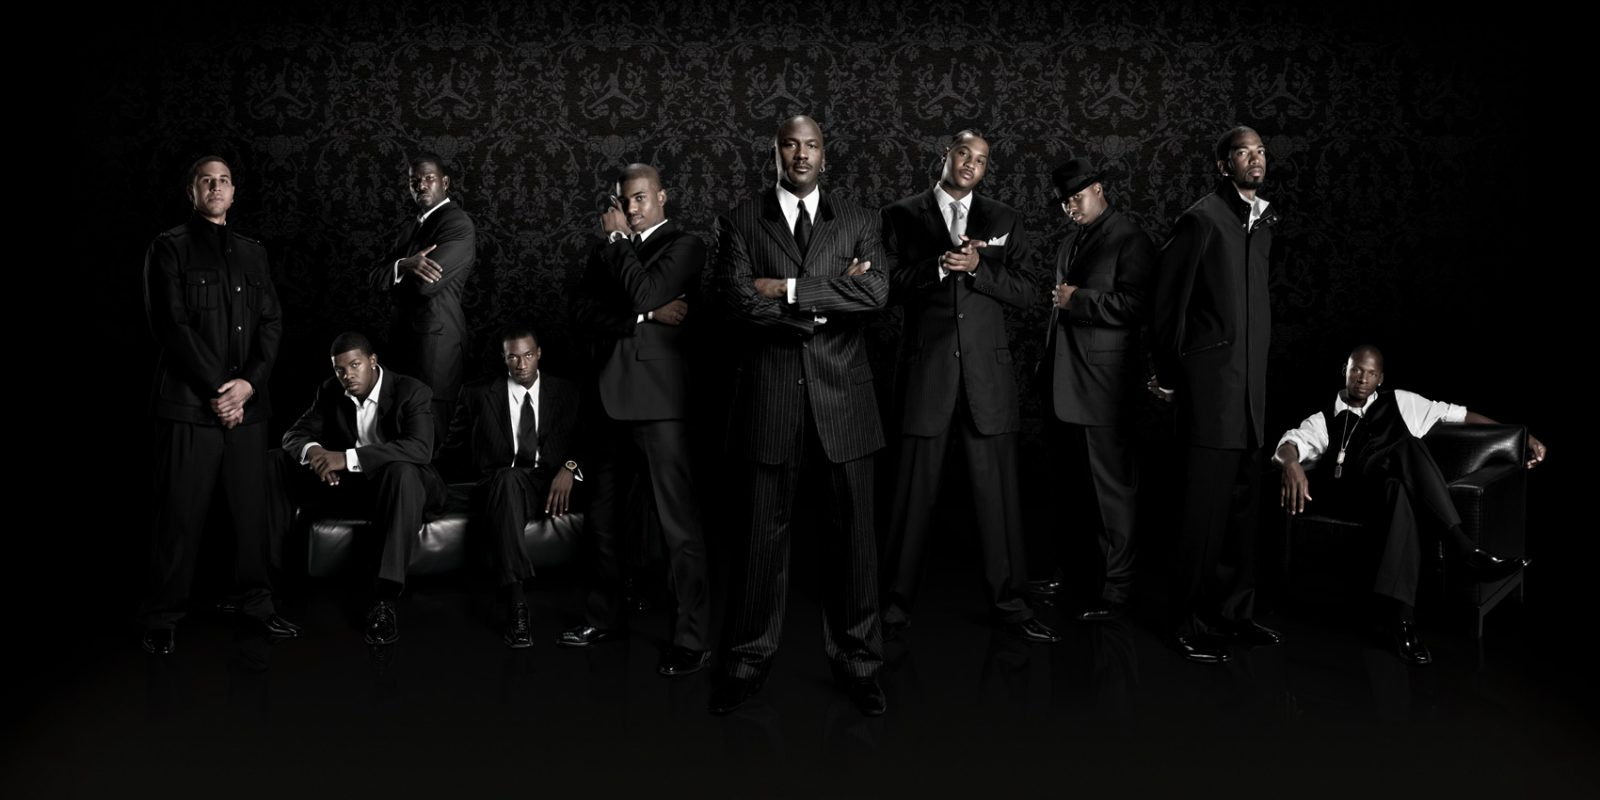 Team Jordan players (MIke Bibby, Joe Johnson, Michael Finley, Josh Howard, Chris Paul, Michael Jordan, Carmelo Anthony, Quentin Richardson, Richard Hamilton, Ray Allen) (photo cred: Nike/Jordan Brand)